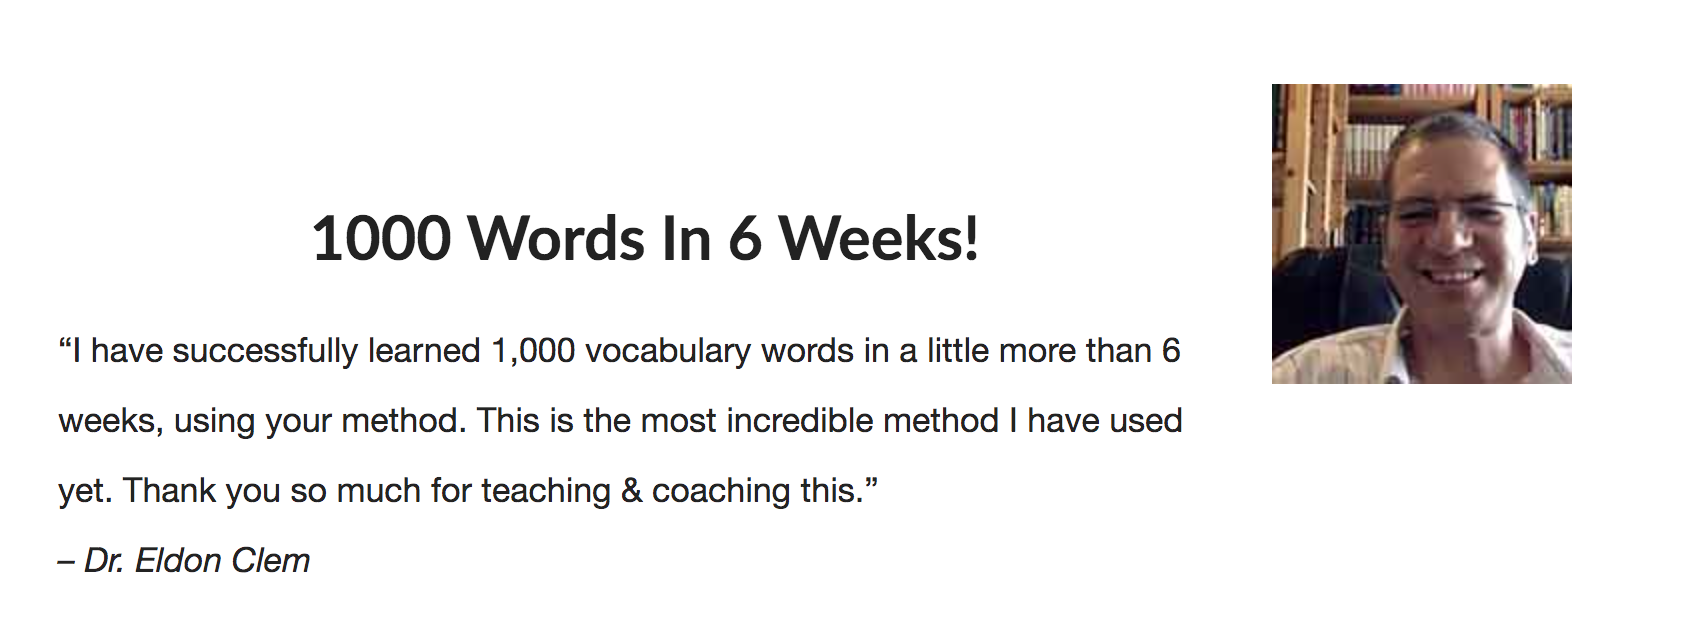 "Dr. Eldon Clem's testimonial: 1000 Words in 6 Weeks! ""I have successfully learned 1,000 vocabulary words in a little more than 6 weeks, using your method. This is the most incredible method I have used yet. Thank you so much for teaching & coaching this."""